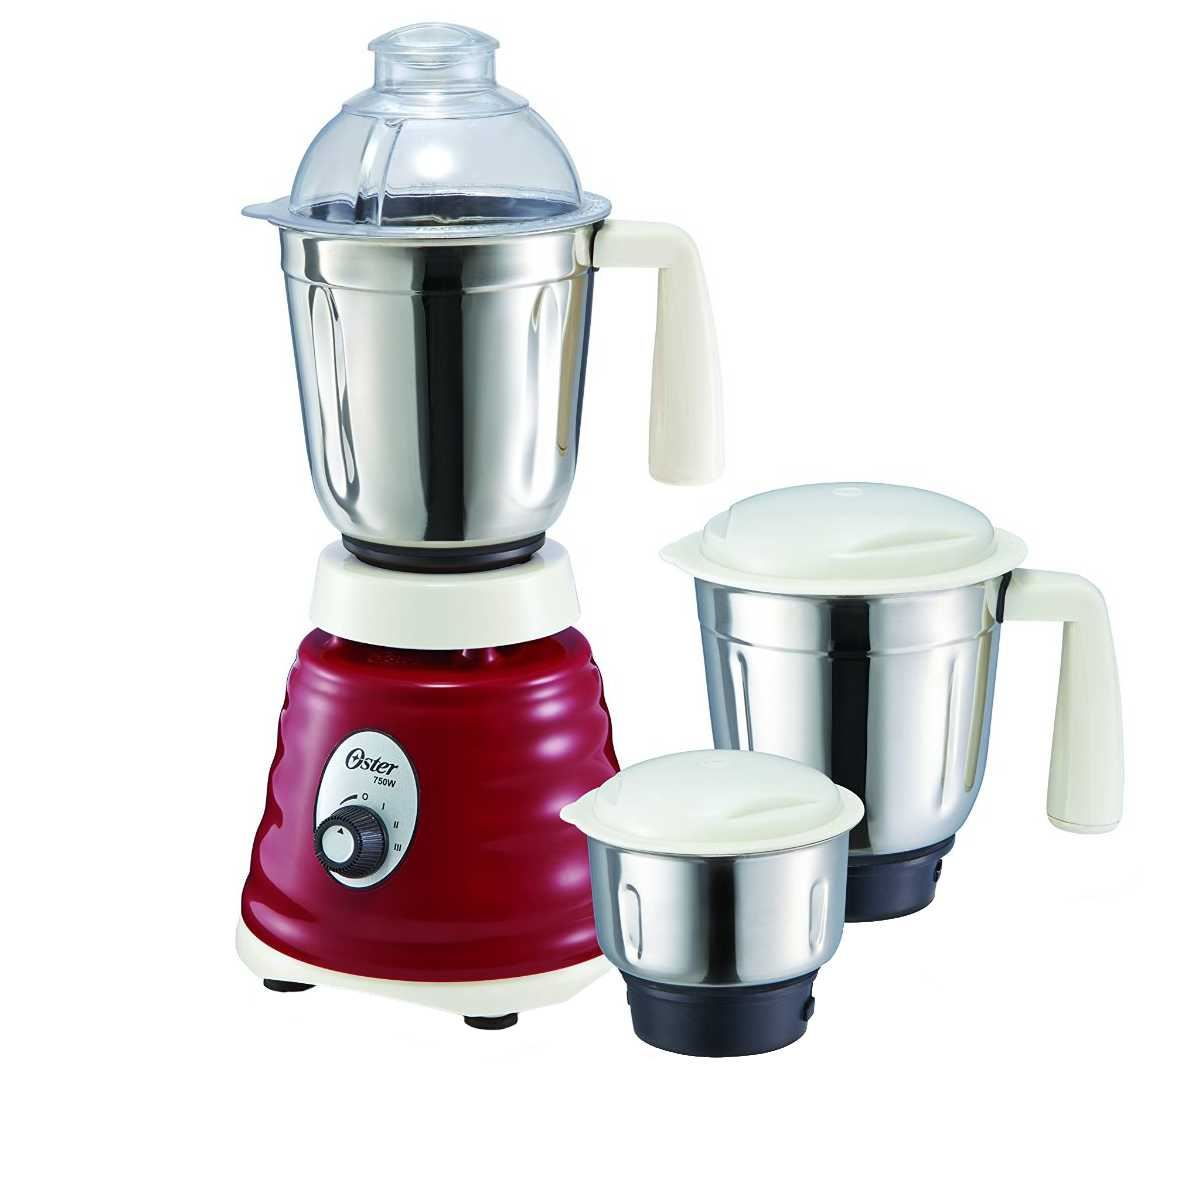 Picture of Oster Mixer Grinder MGSTSL8020